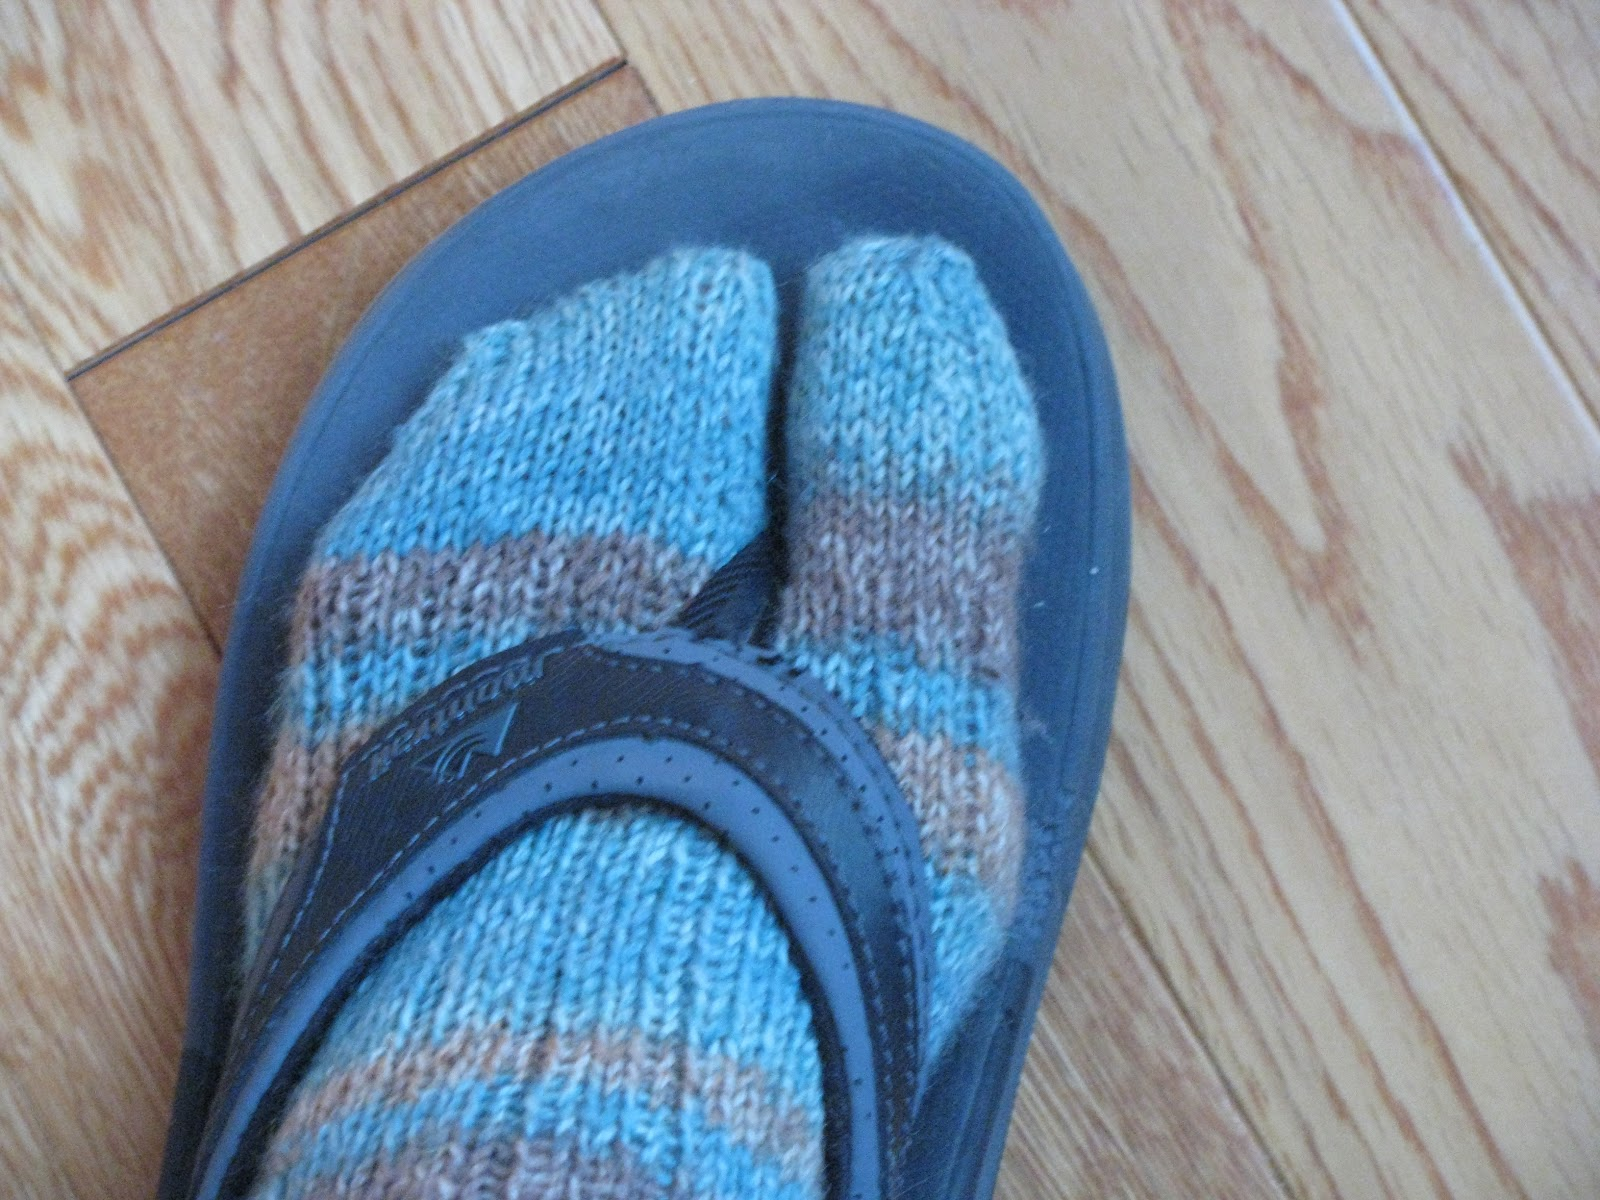 Knitting Pattern For Sandal Socks : Chris Knits in Niagara: Winter Flip Flop Socks